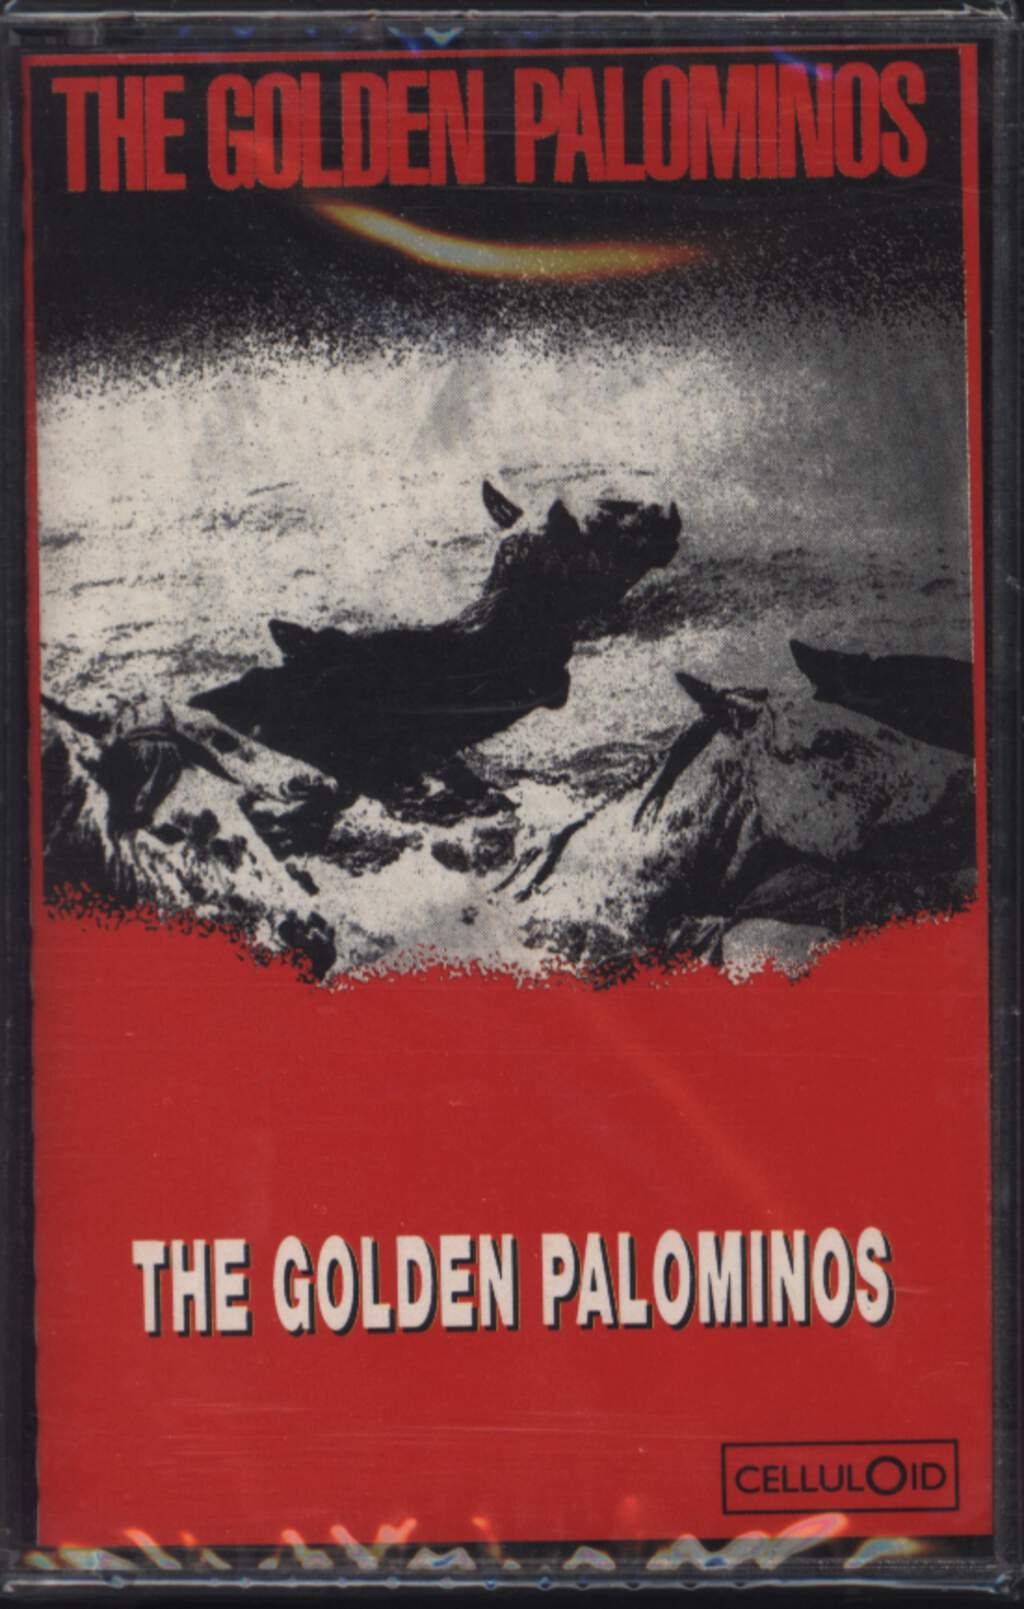 The Golden Palominos: The Golden Palominos, Tape